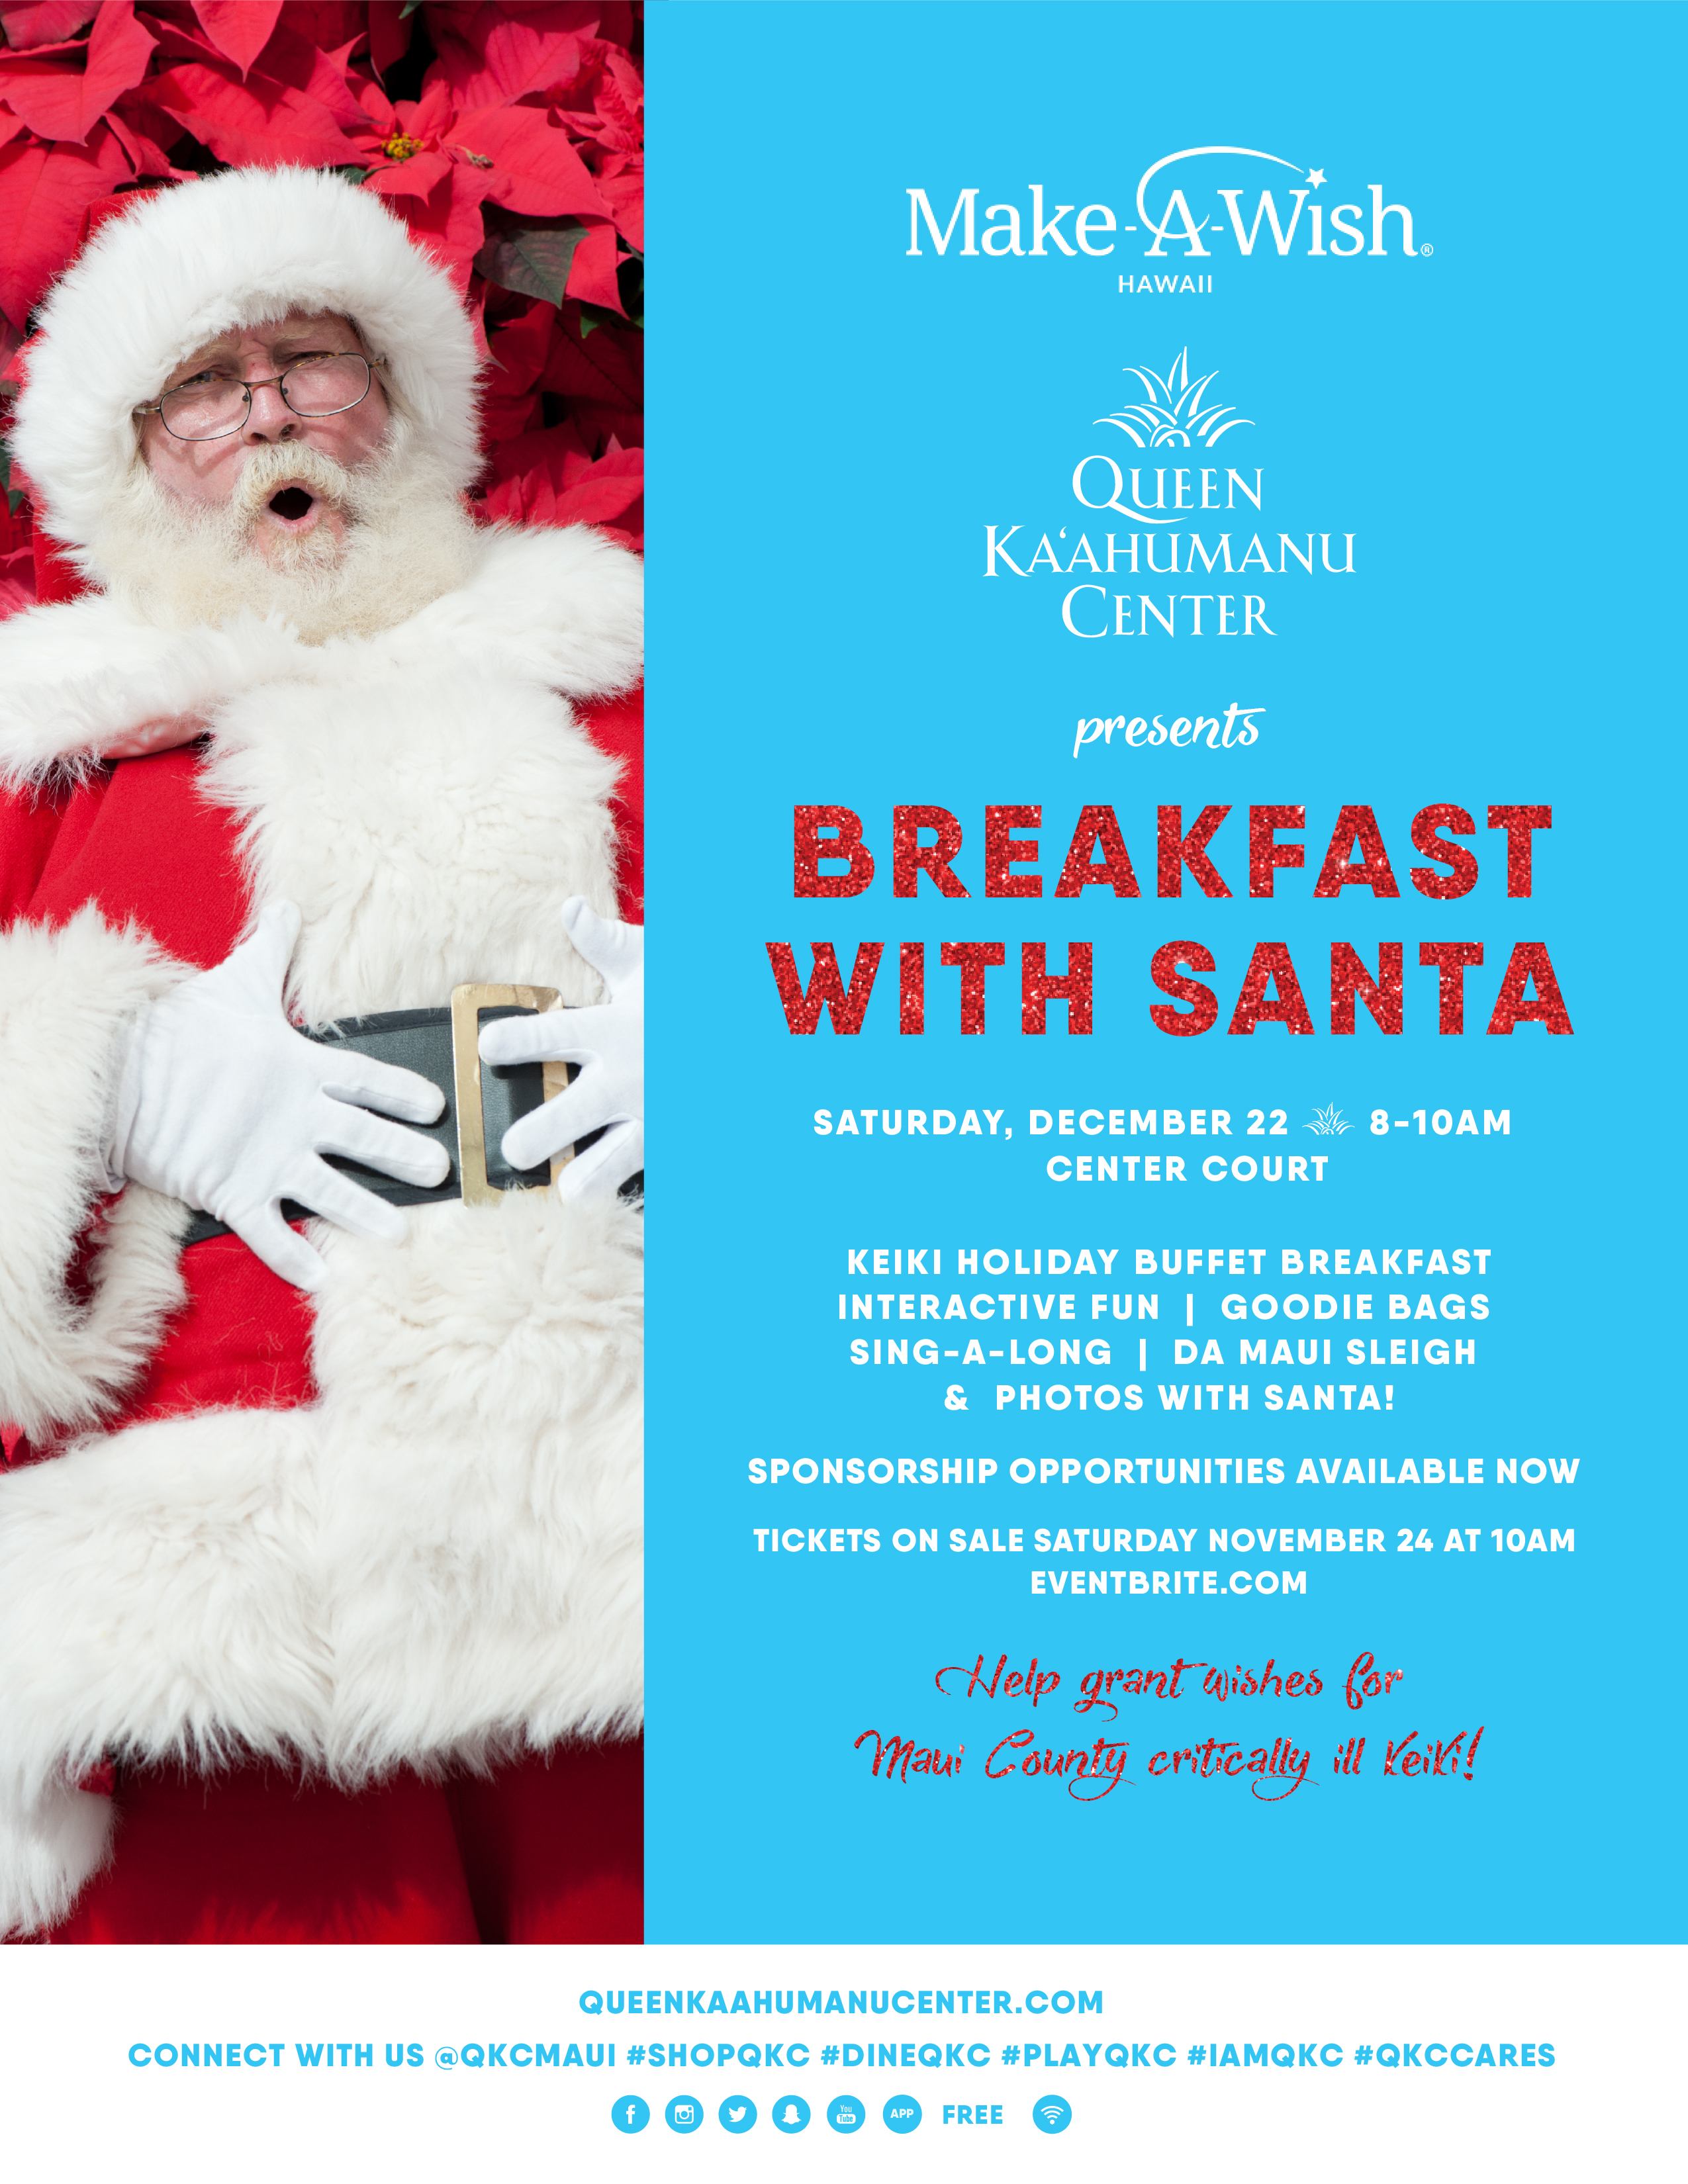 QKC Hosts Make-A-Wish Hawaiʻi Breakfast with Santa 2018